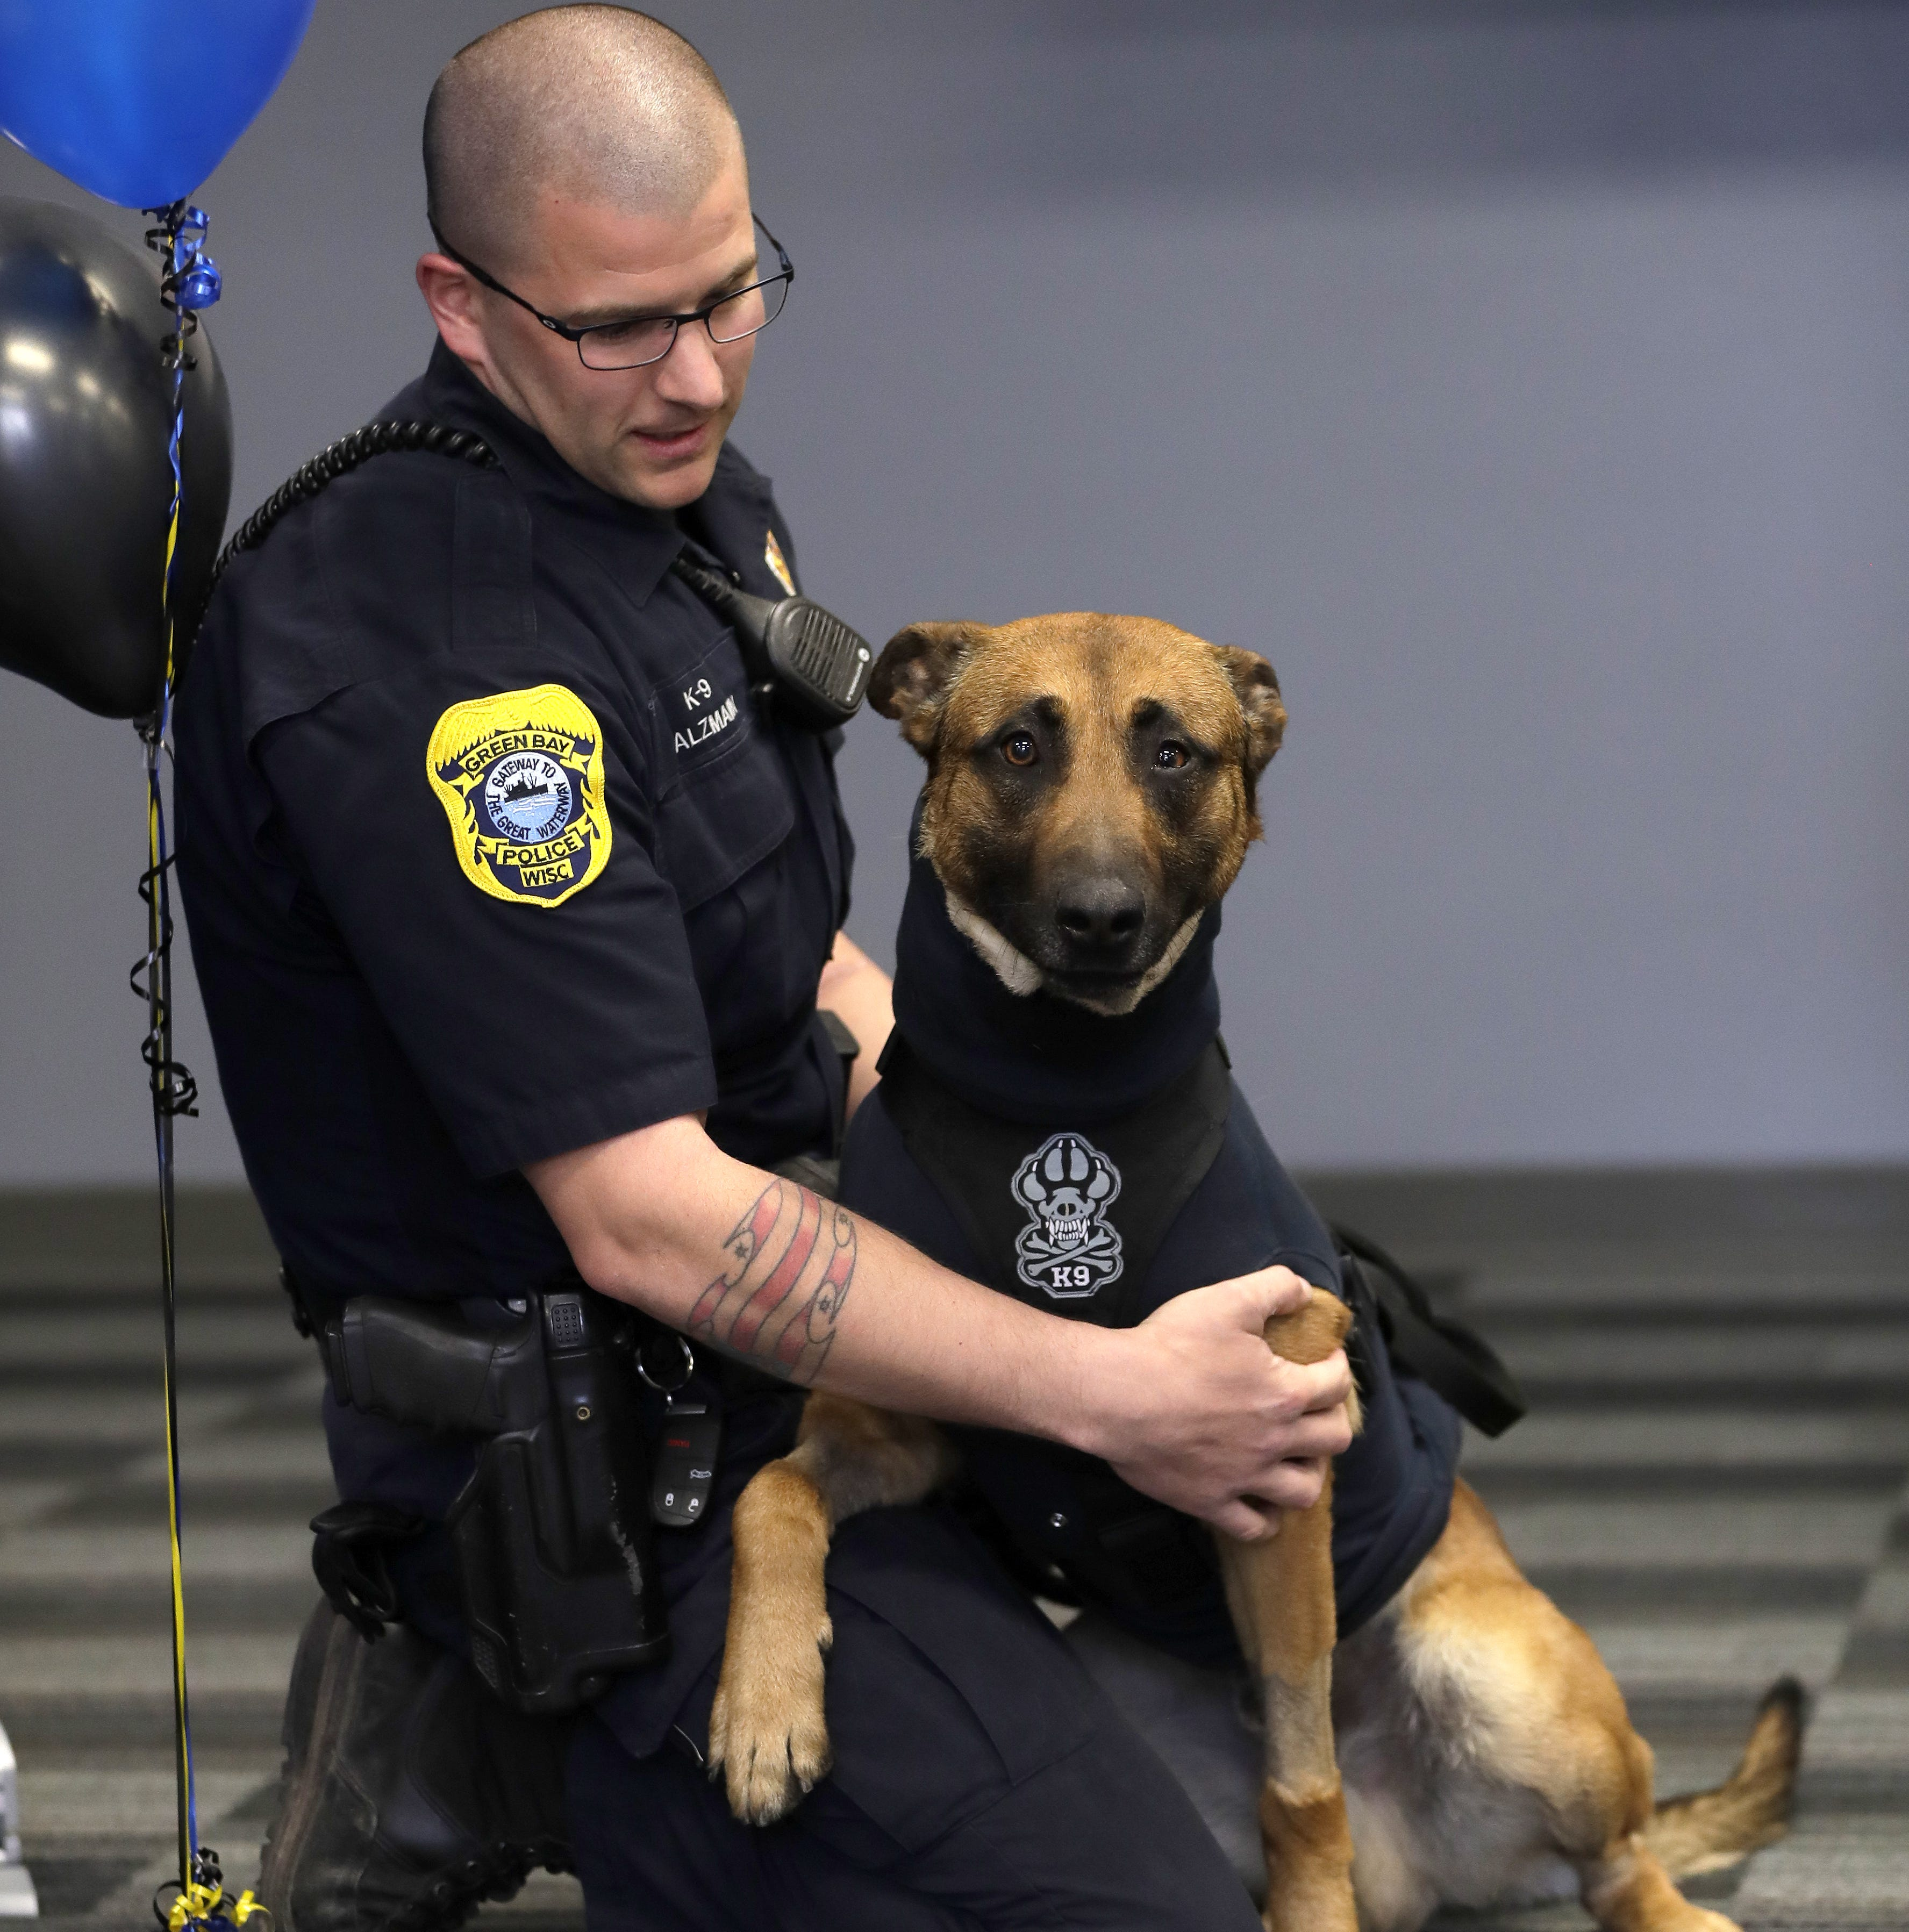 Green Bay Police K-9 handlers to receive emergency trauma kits as Pyro returns to work